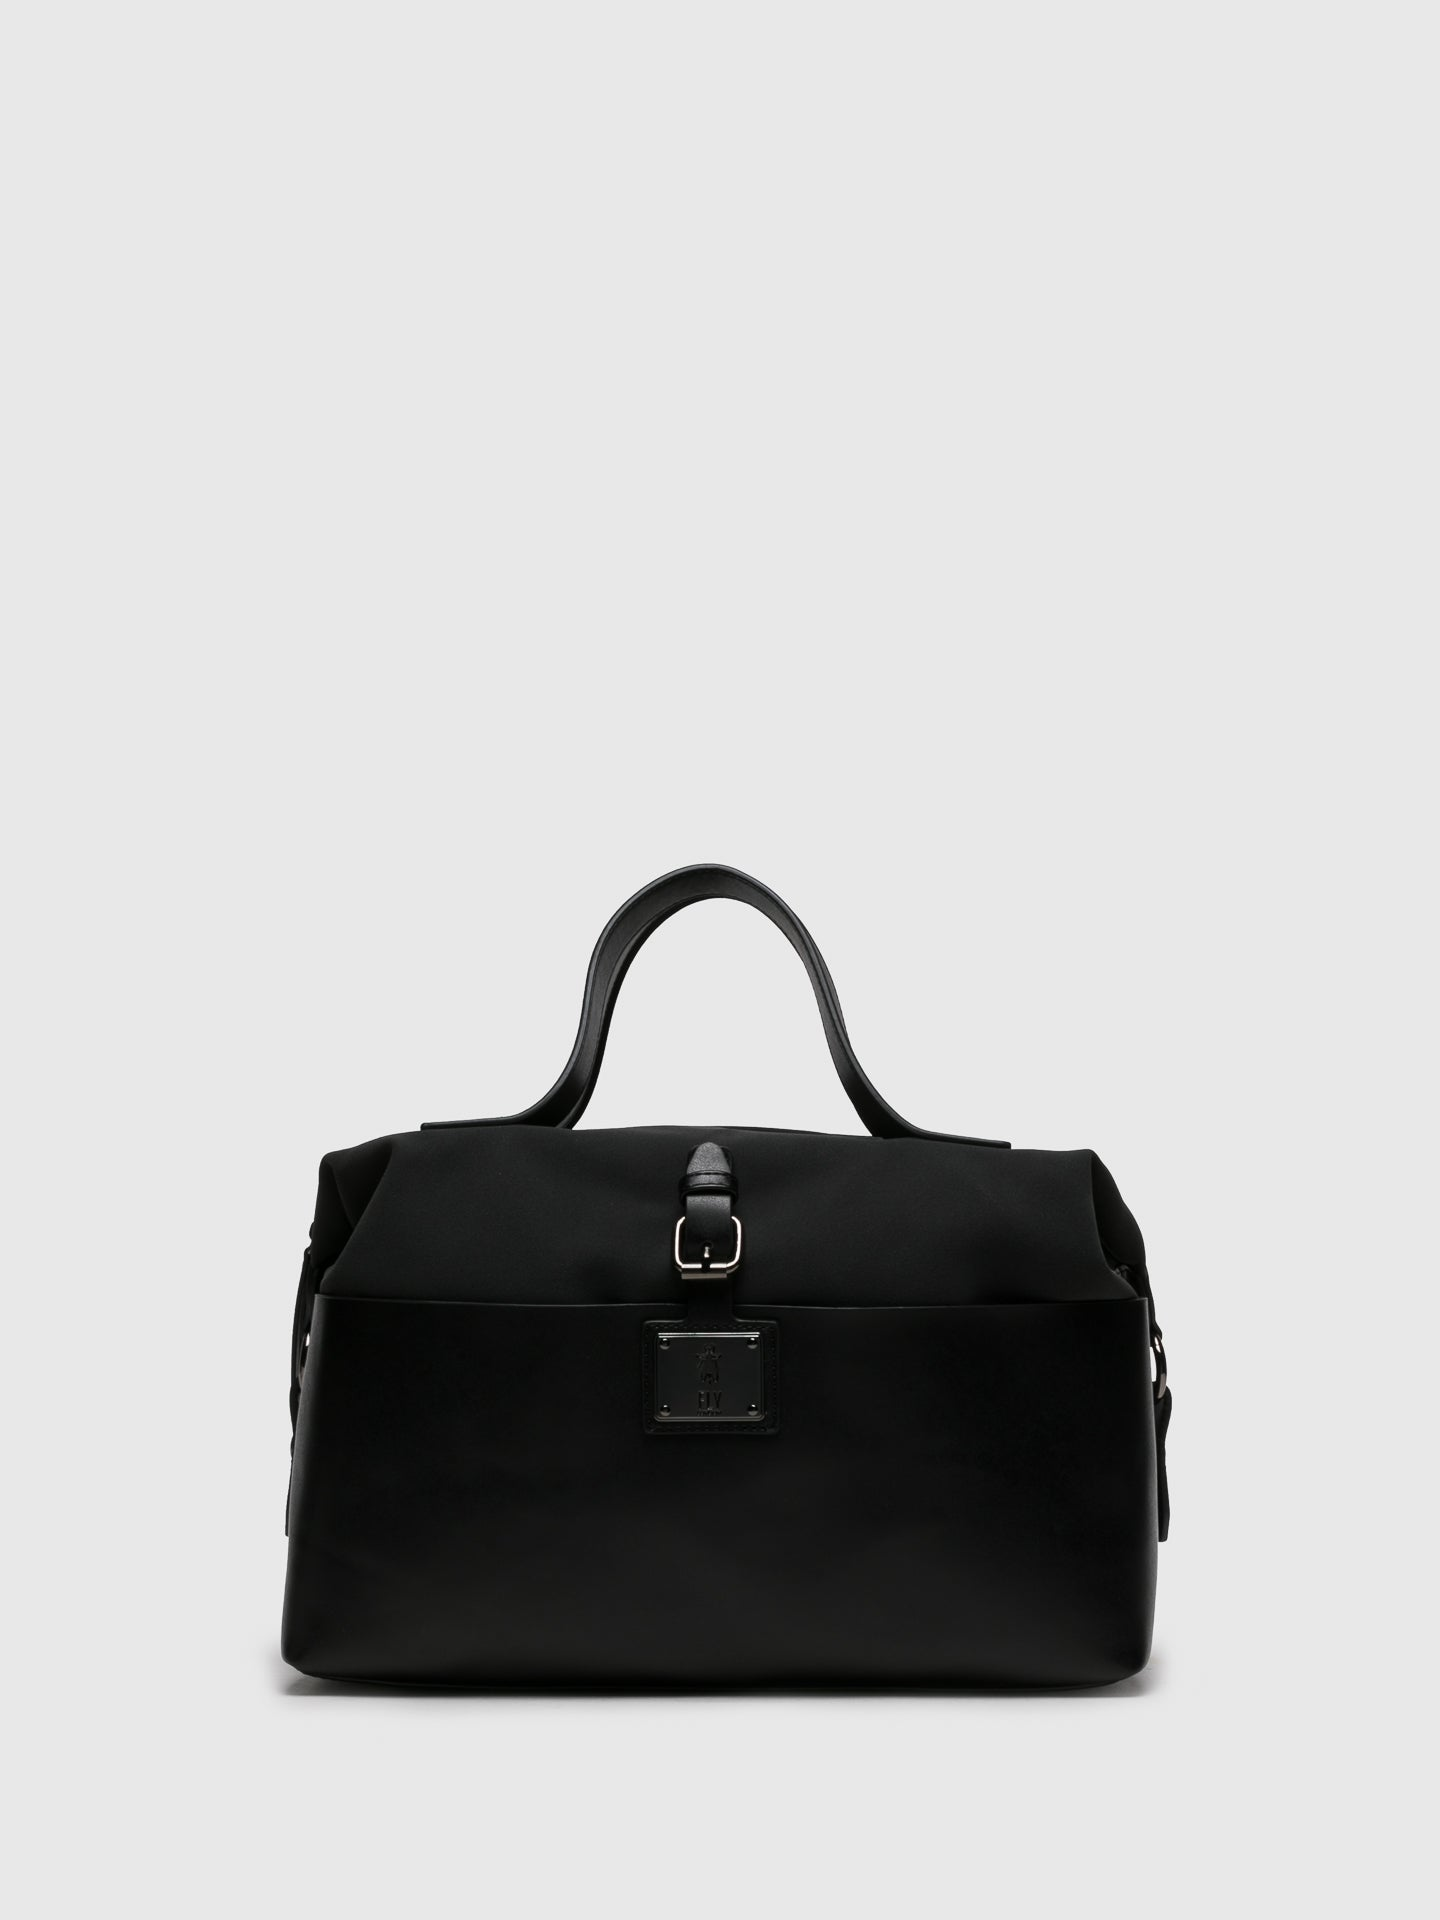 Fly London Handtasche in Noir